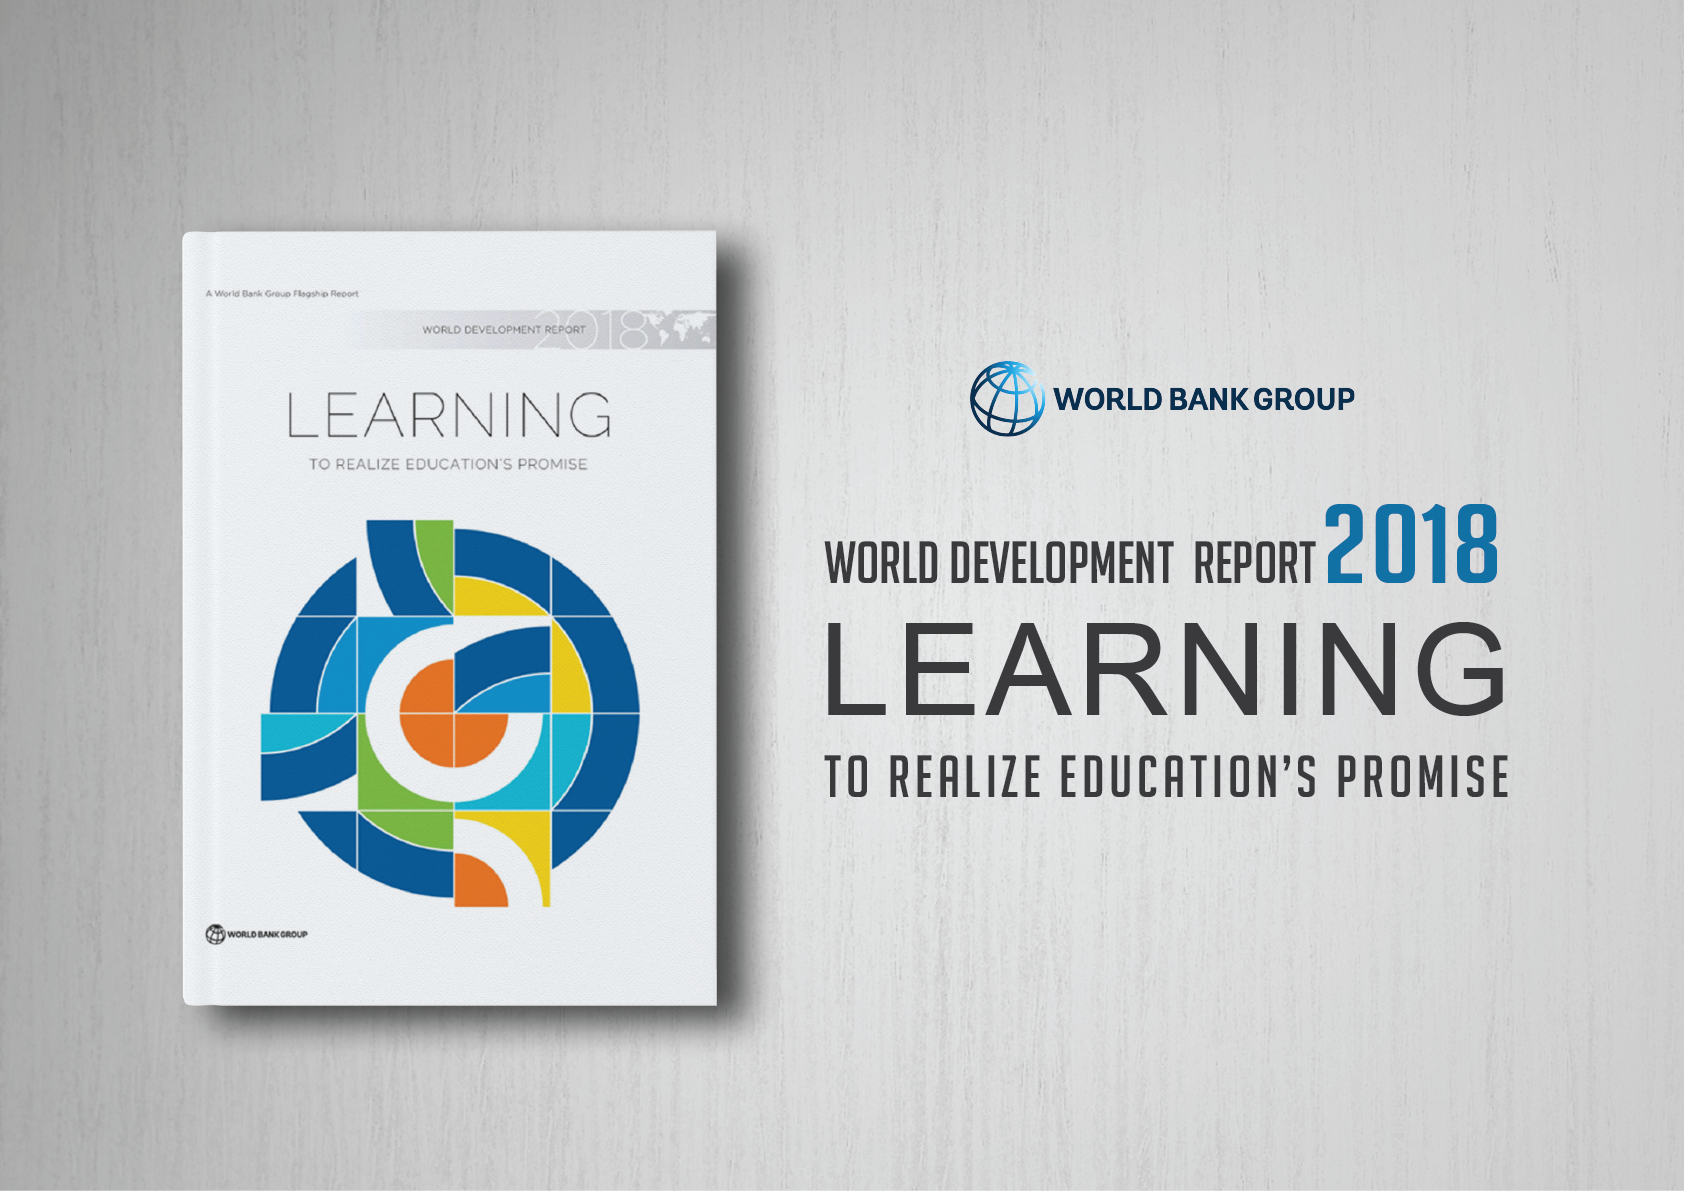 2018 World Development Report (WDR 2018) – LEARNING to Realize Education's Promise